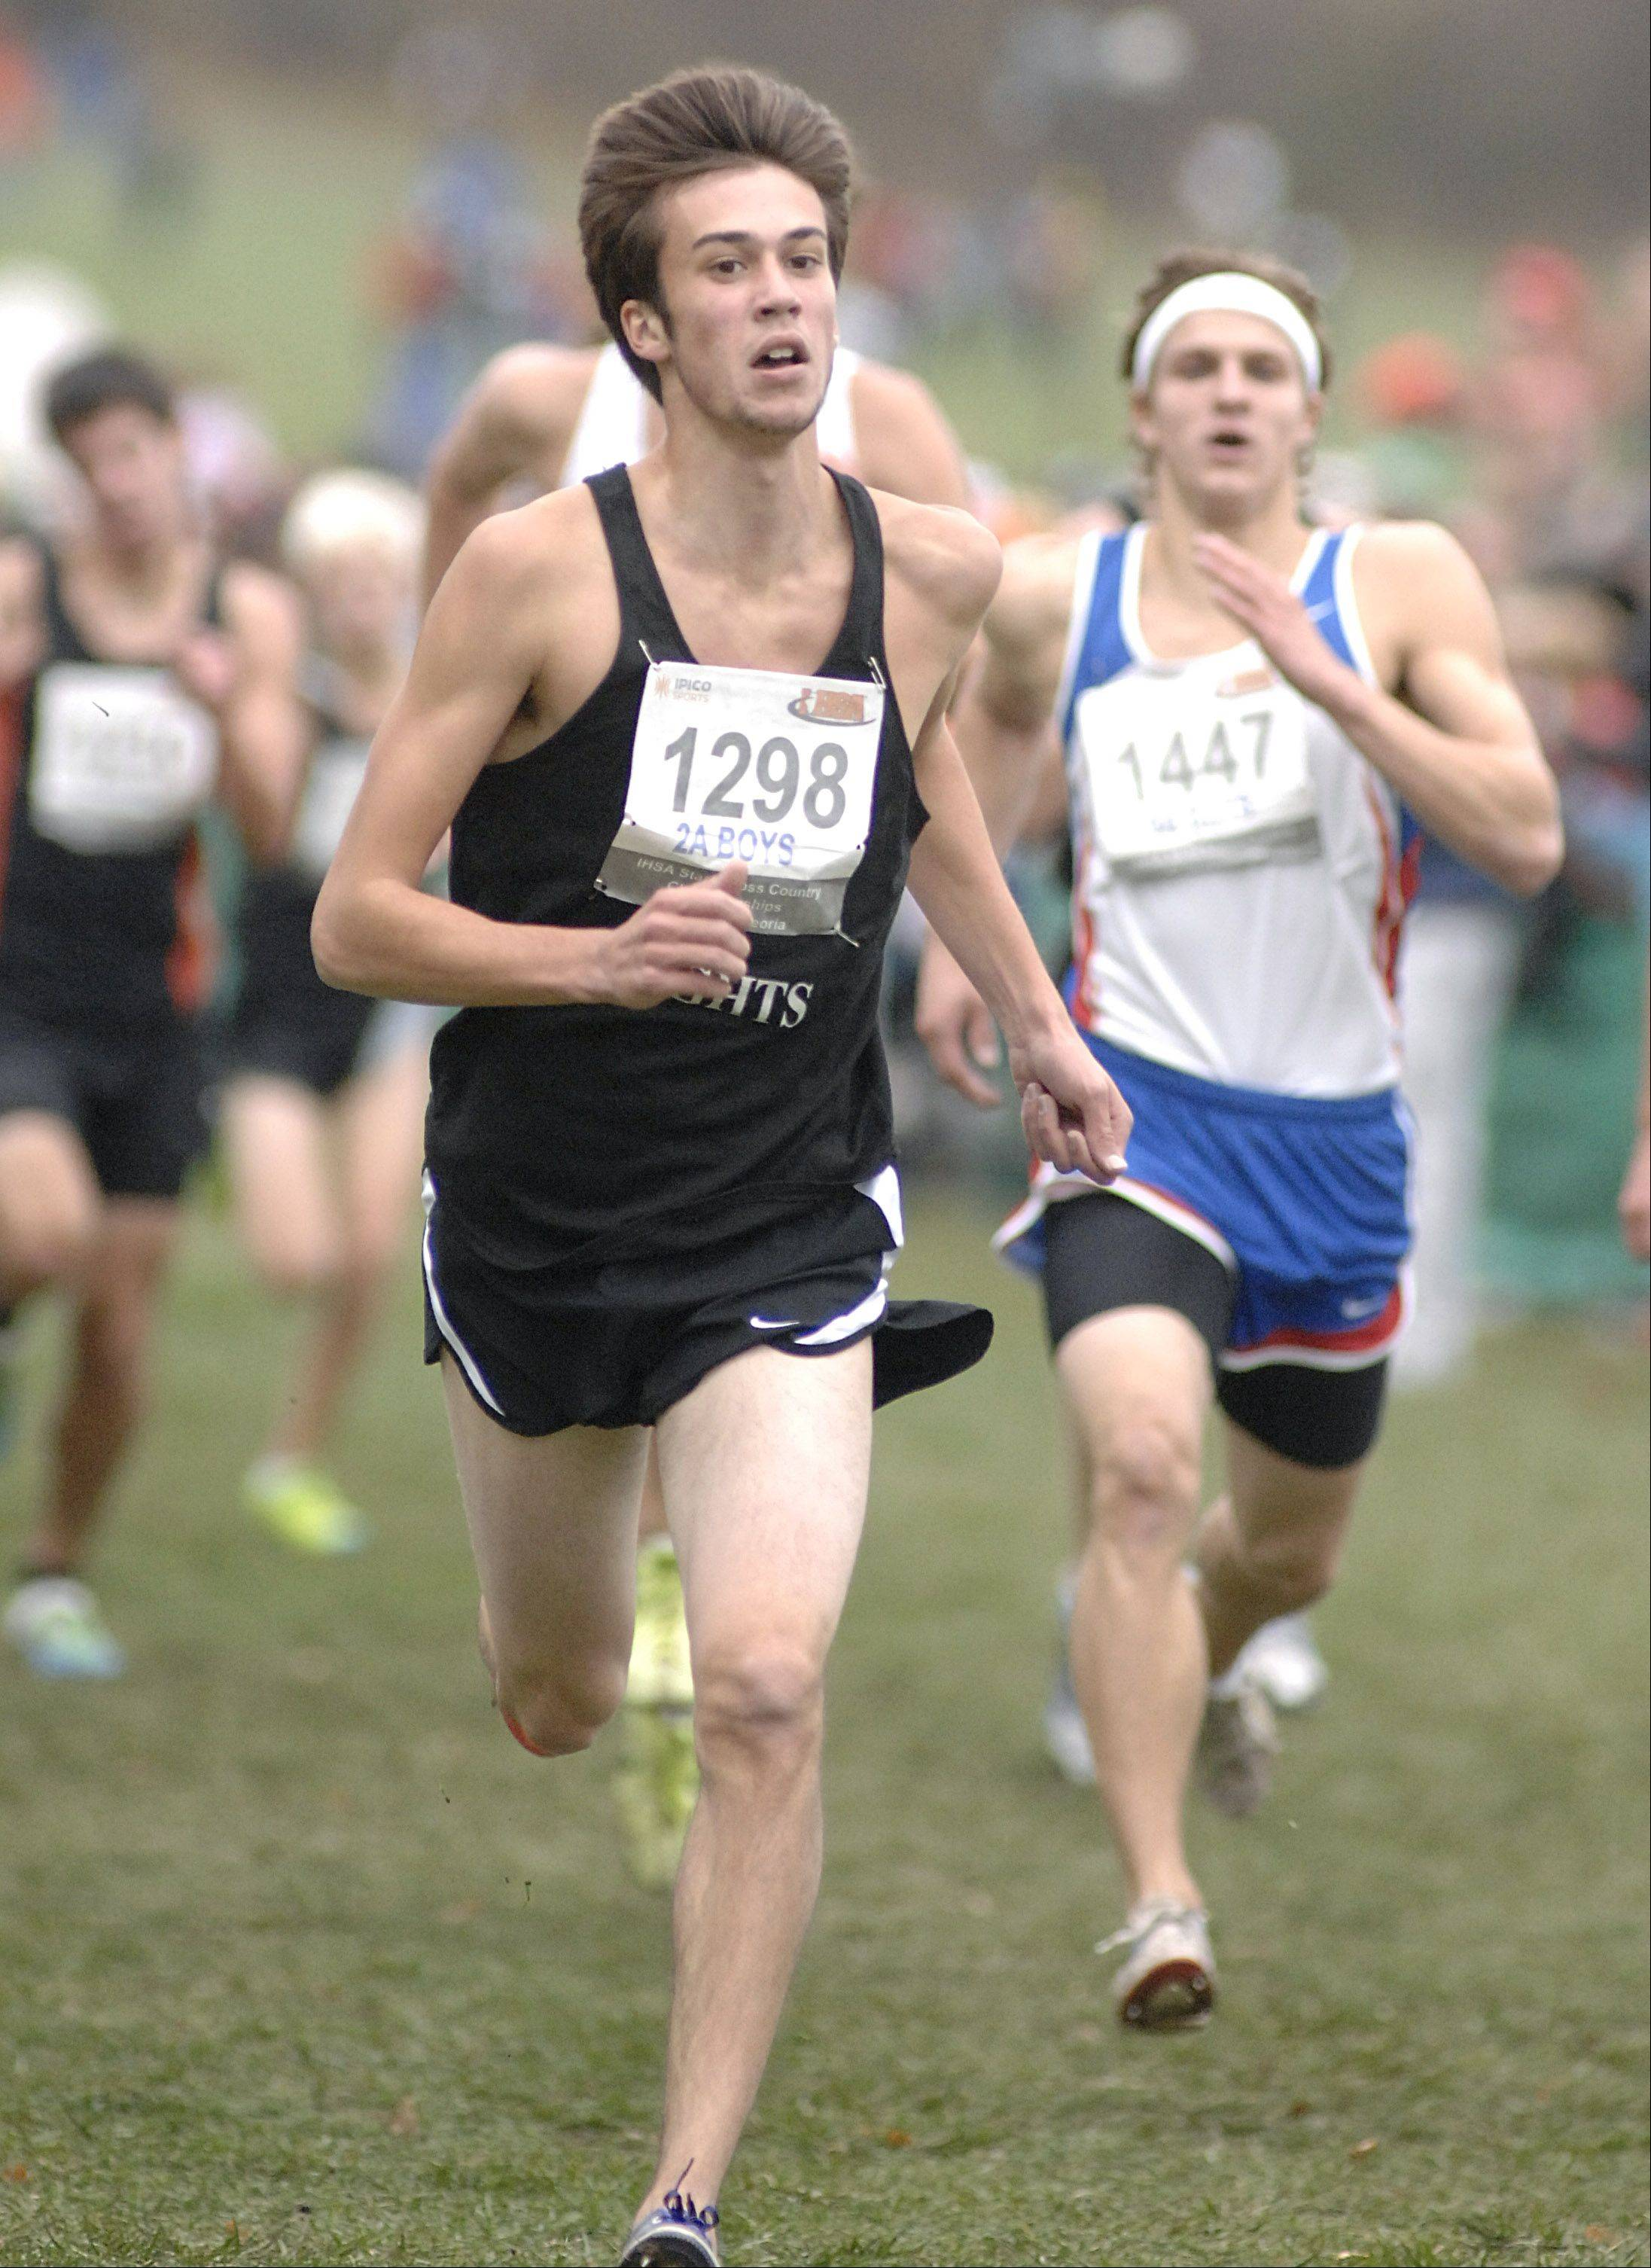 Kaneland's Conor Johnson nears the finish line in the state cross country 2A final in Peoria to take 36th place on Saturday, November 3. Johnson placed 36th.